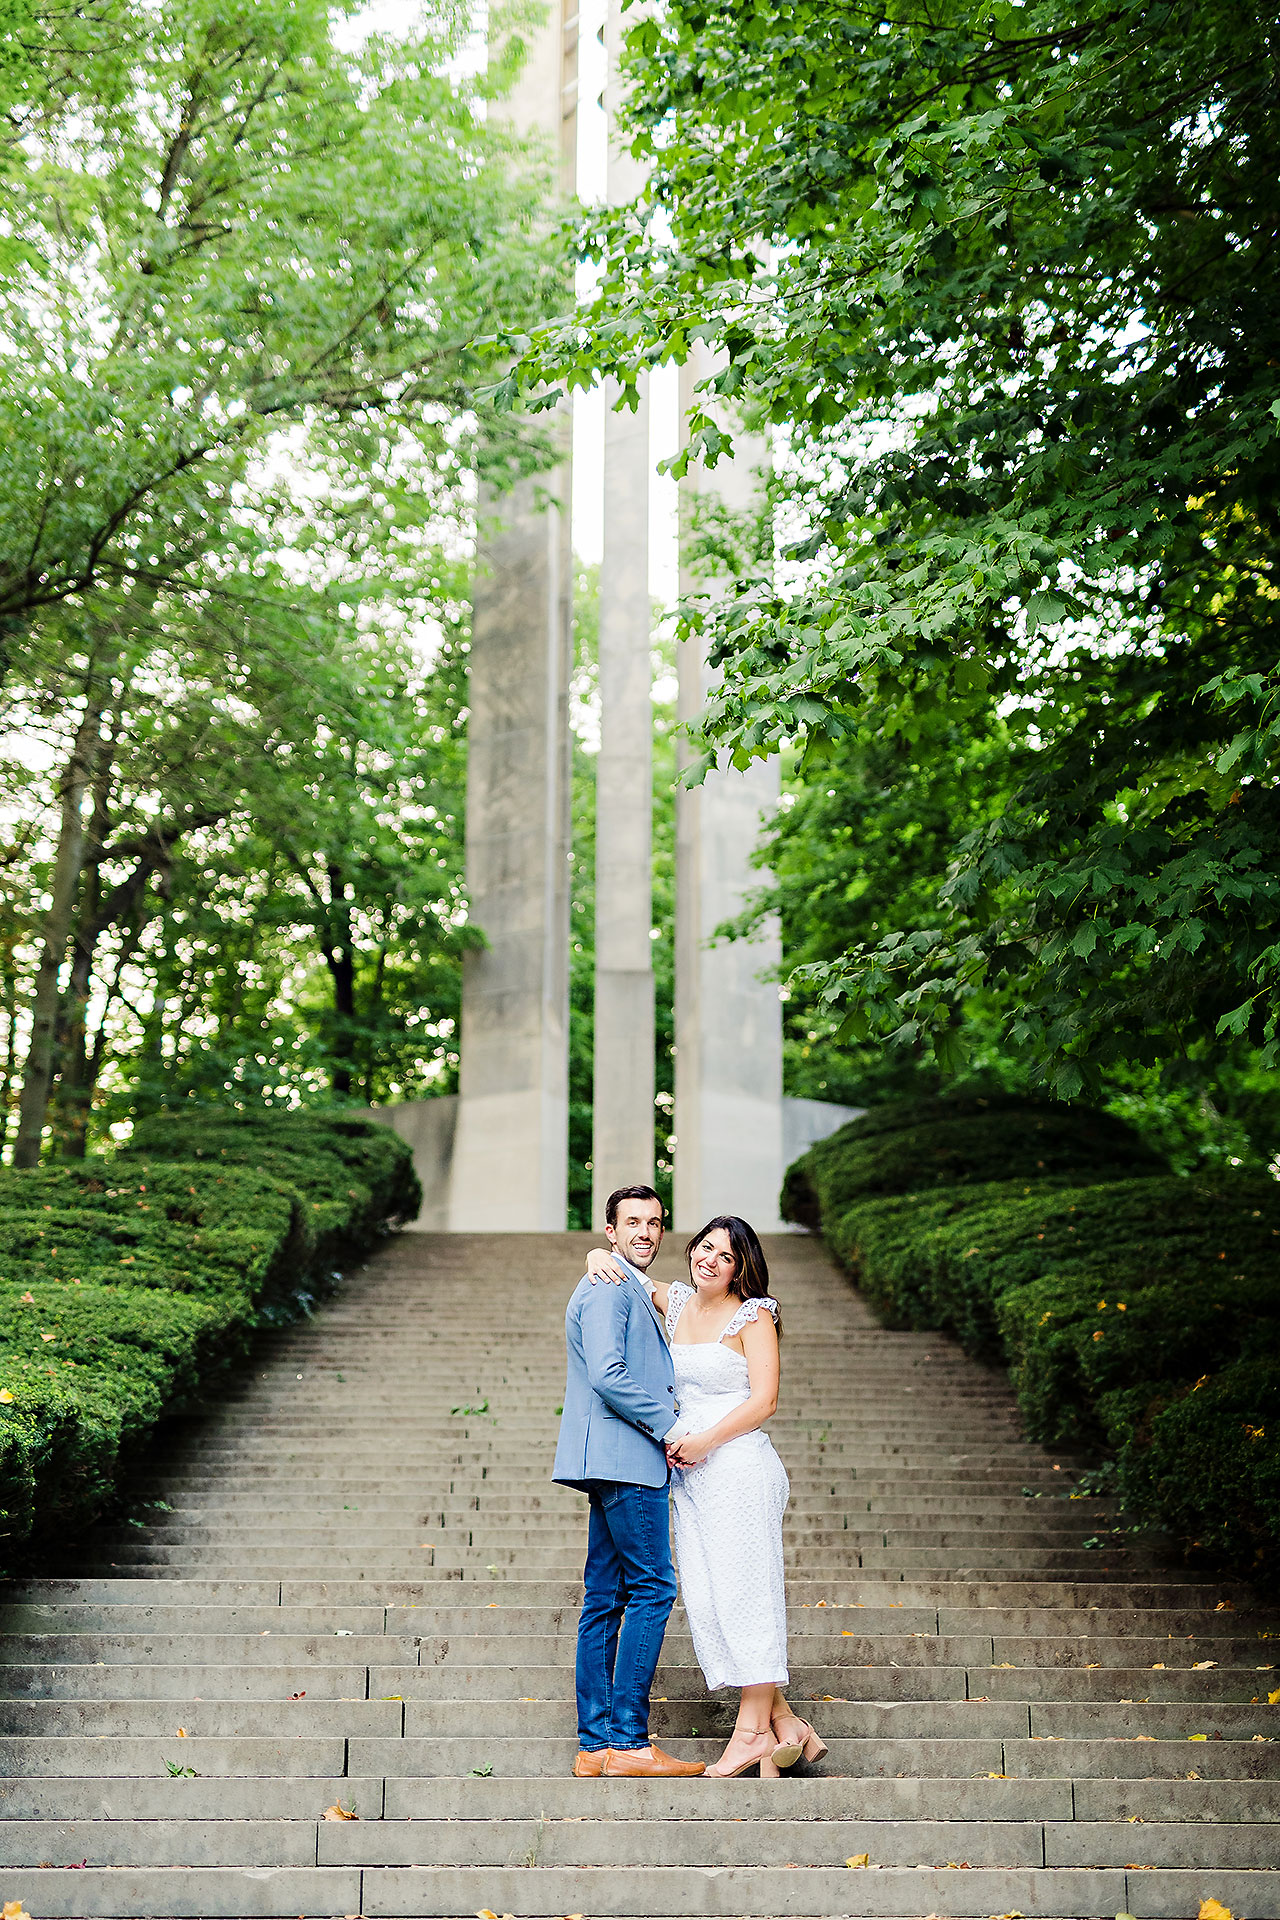 Kate Sawyer Holcomb Gardens Engagement Session 130